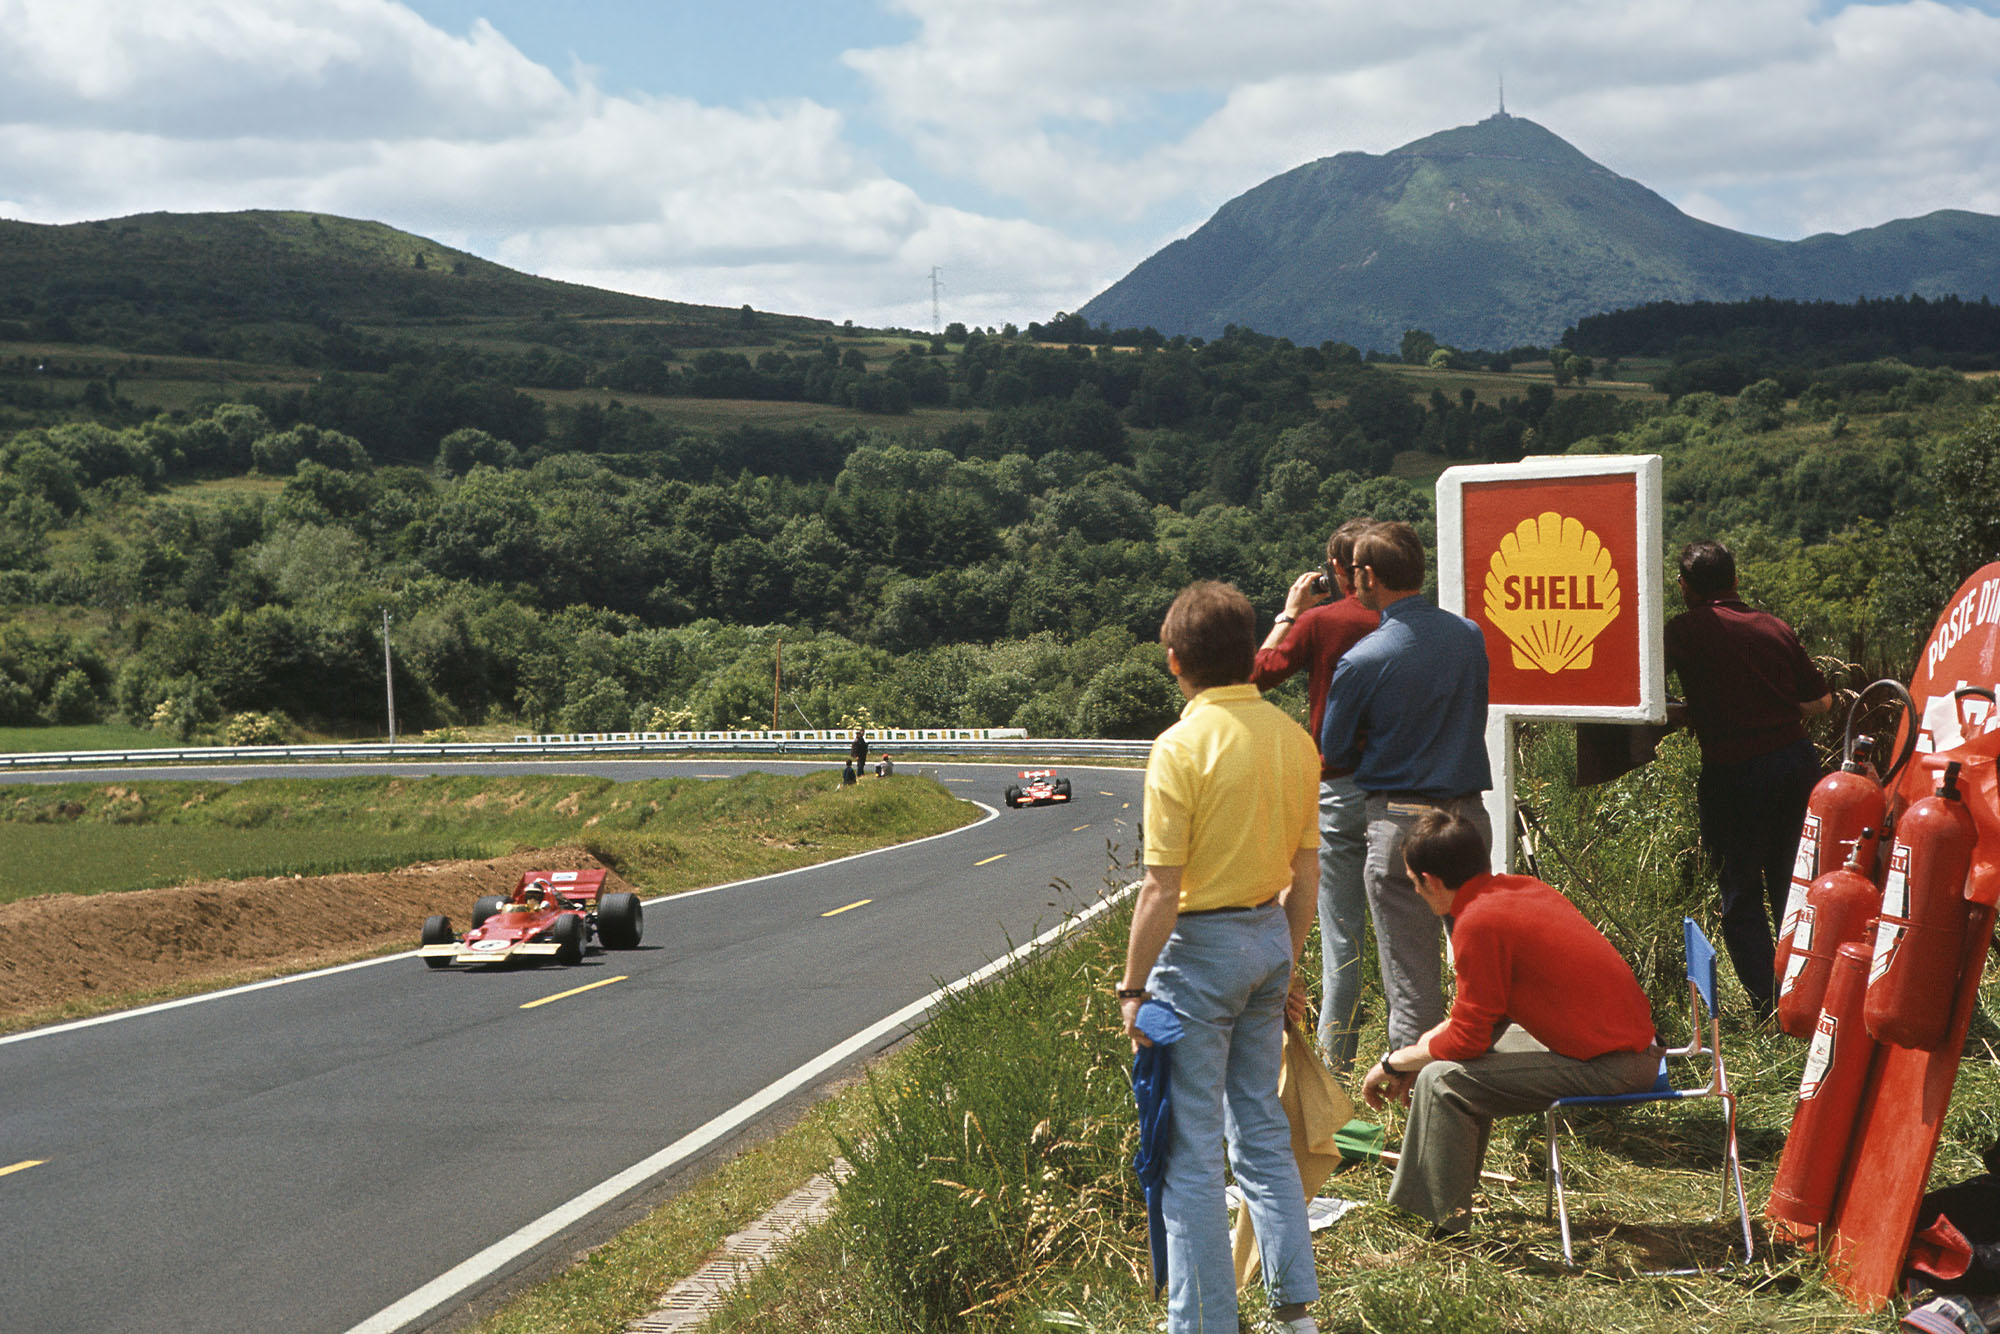 Jochen Rindt leads for Lotus during the 1970 French Grand Prix